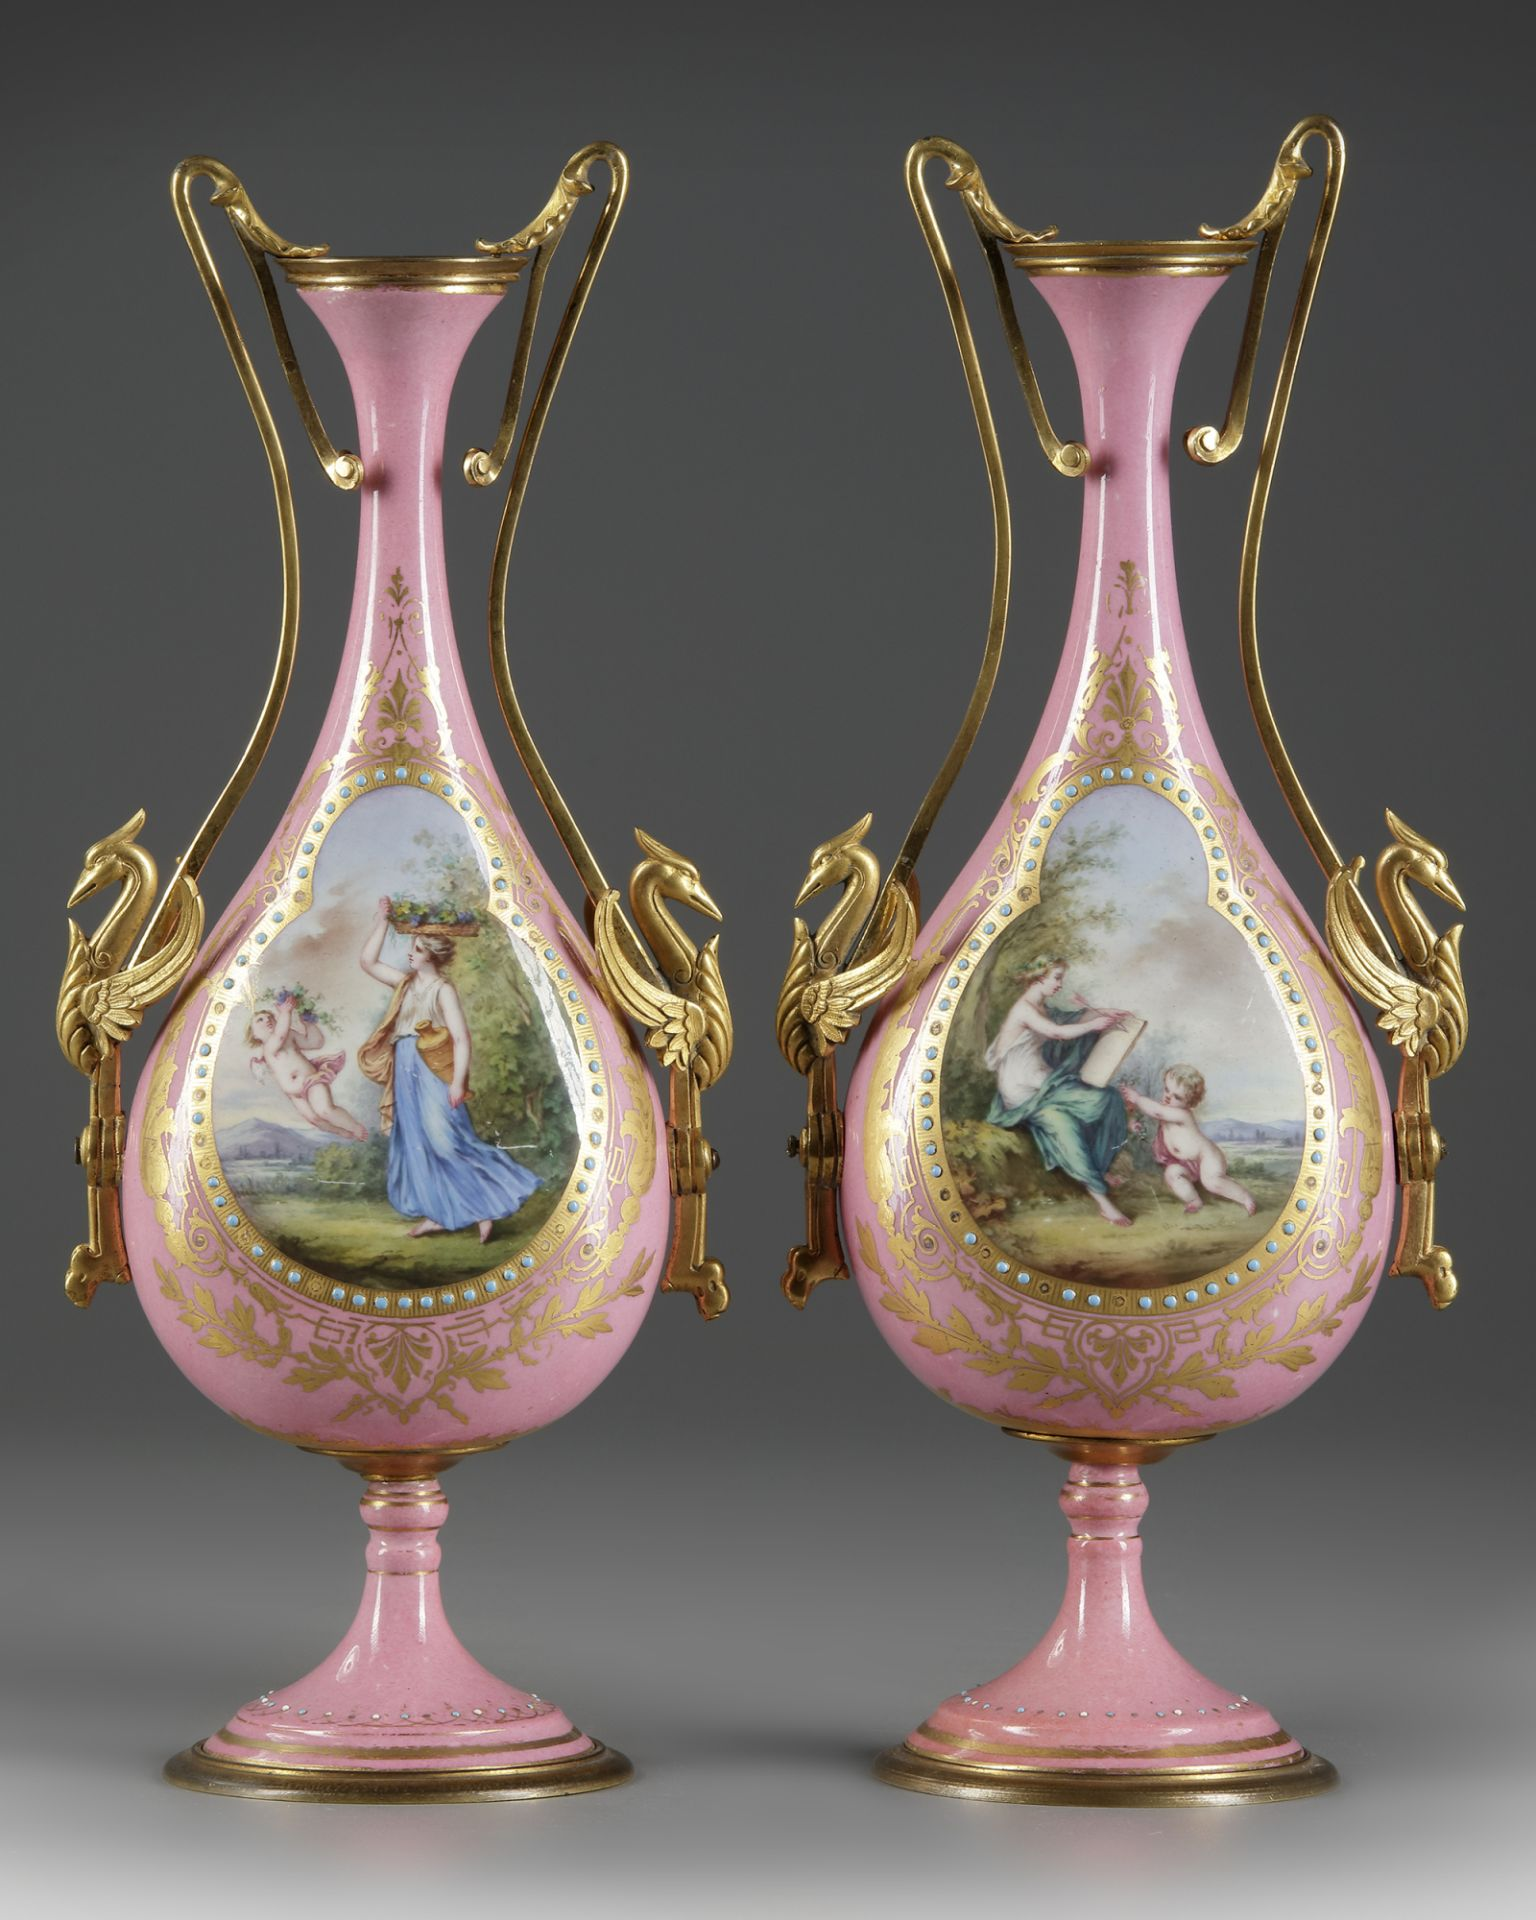 A PAIR OF FRENCH PINK SEVRES VASES, LATE 19TH CENTURY